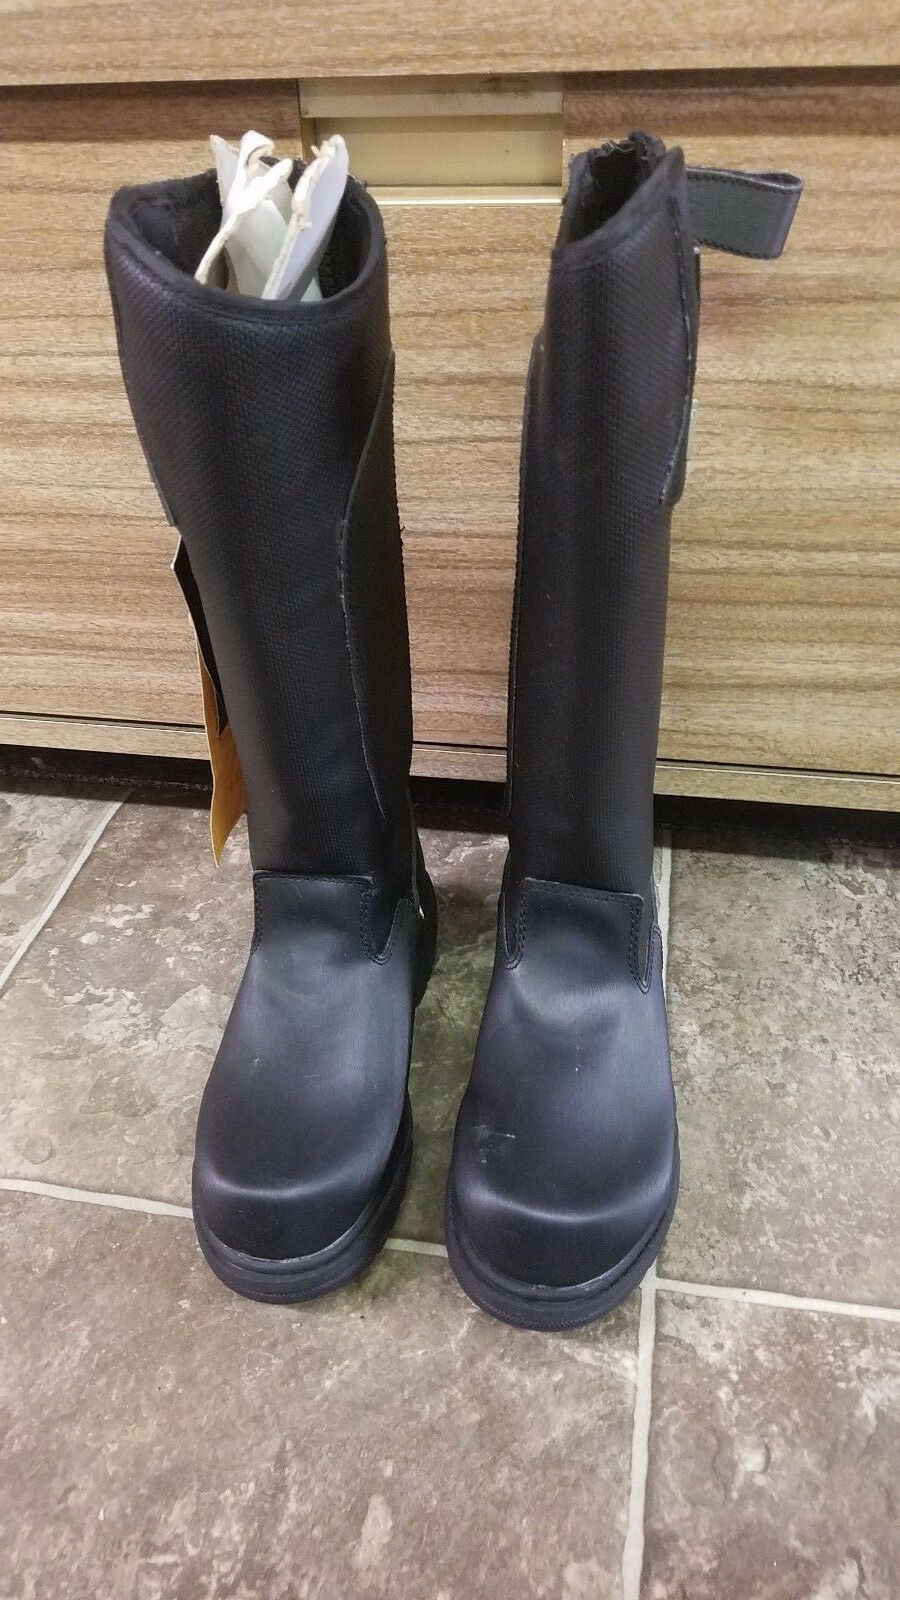 Mountain Horse Rimfrost Rider Junior Tall Winter Boot Size 2